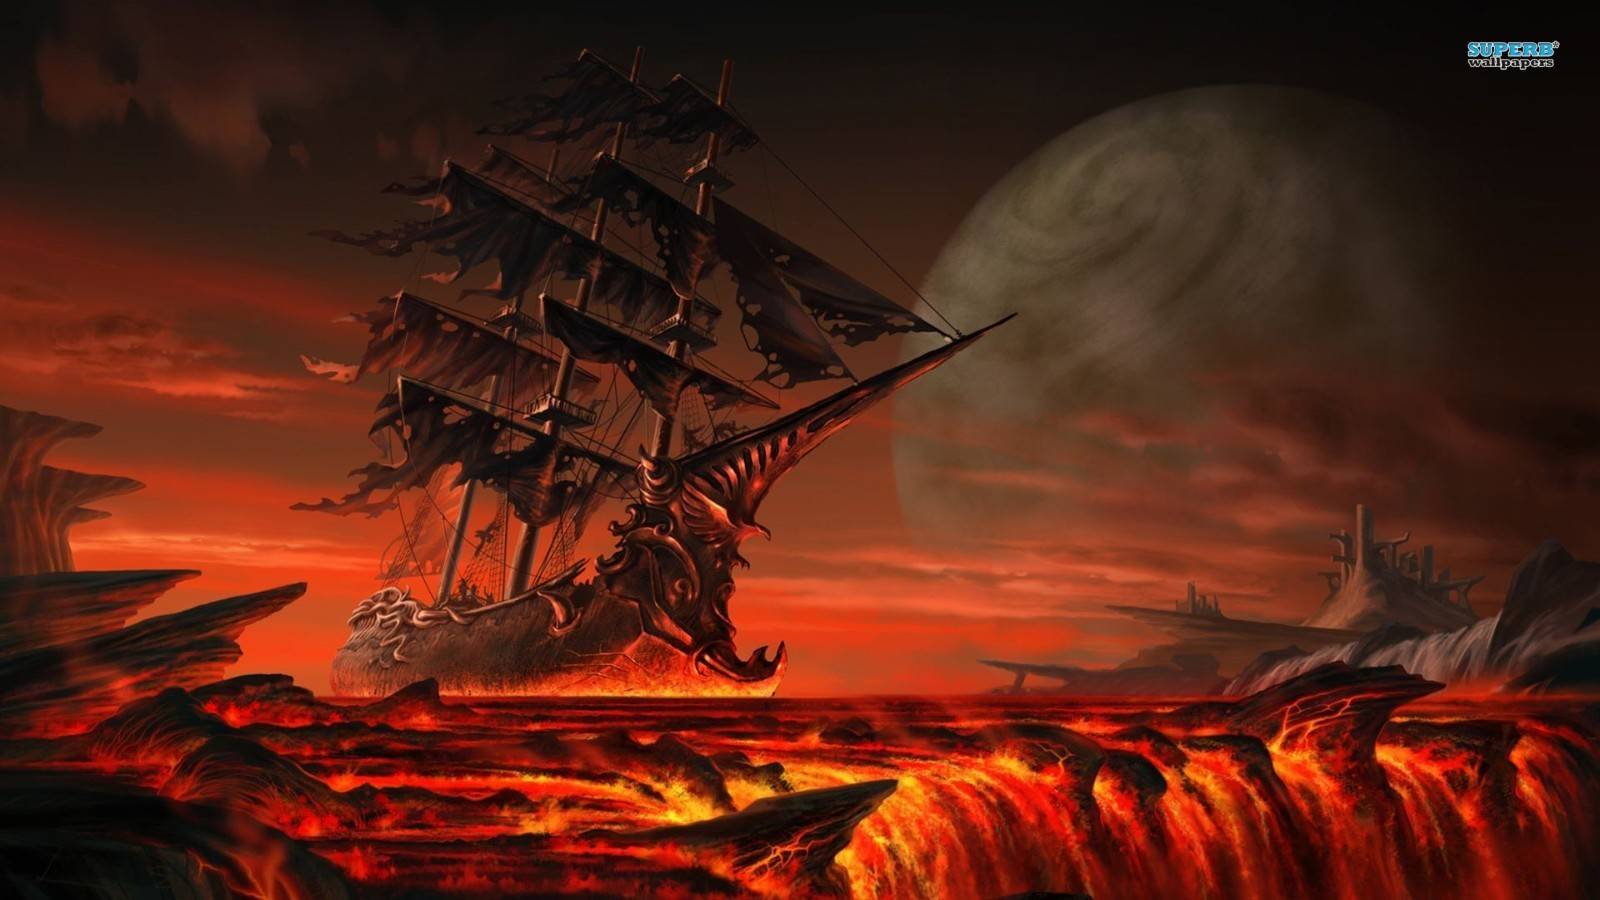 Pirate Ship Wallpapers for Desktop   1600x900